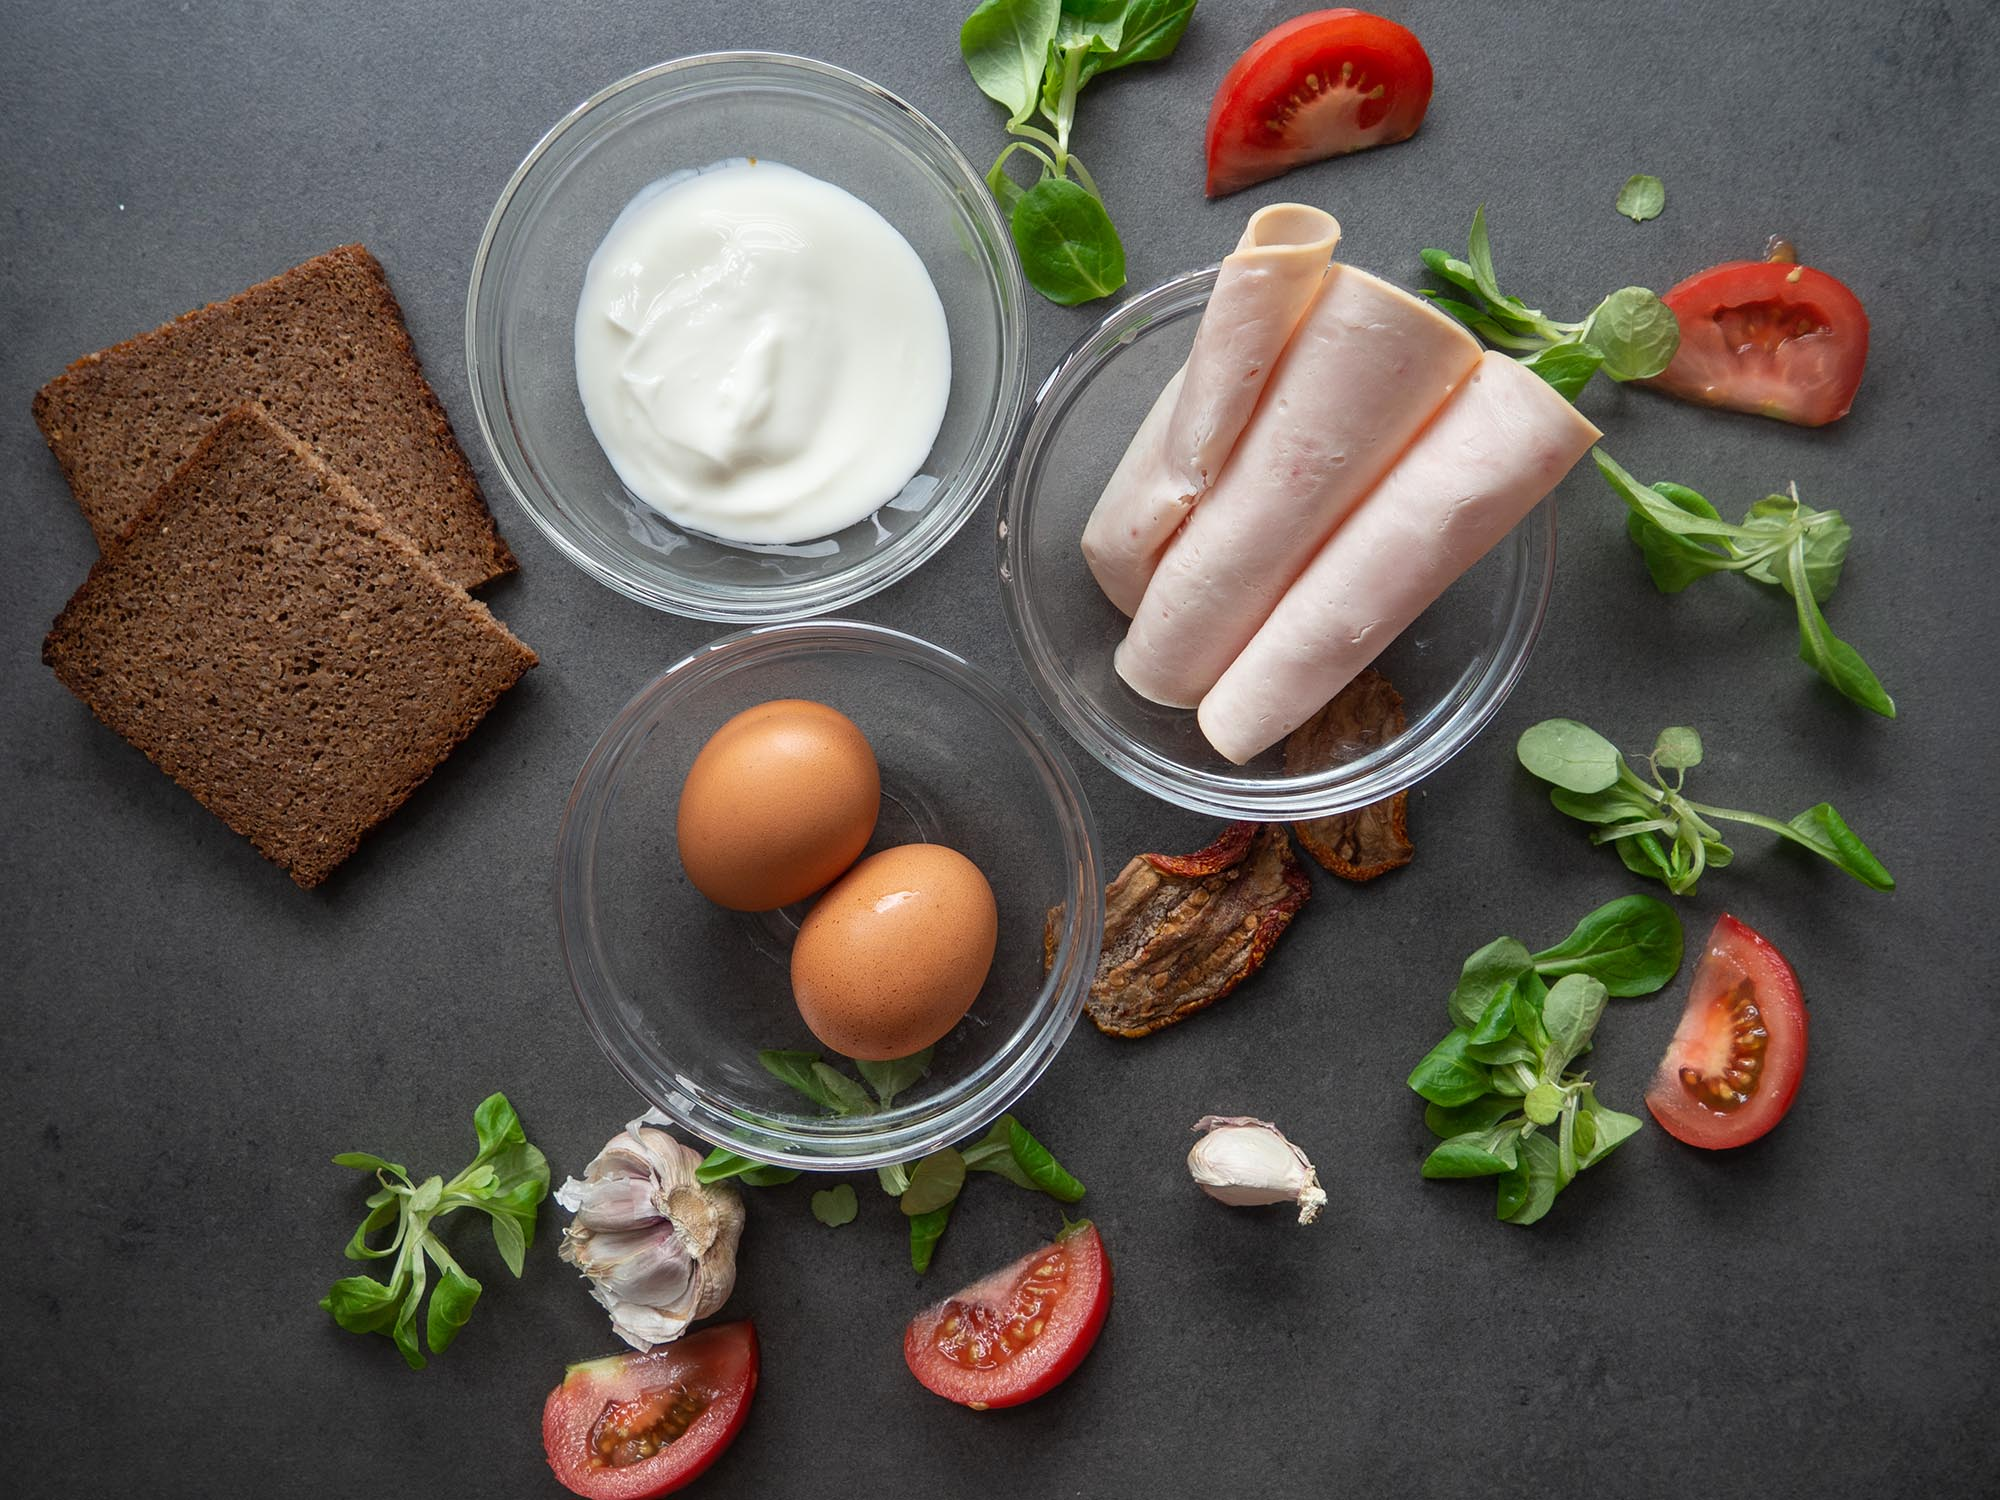 How Much Proteins for Cyclists? Whey Protein vs Isolate